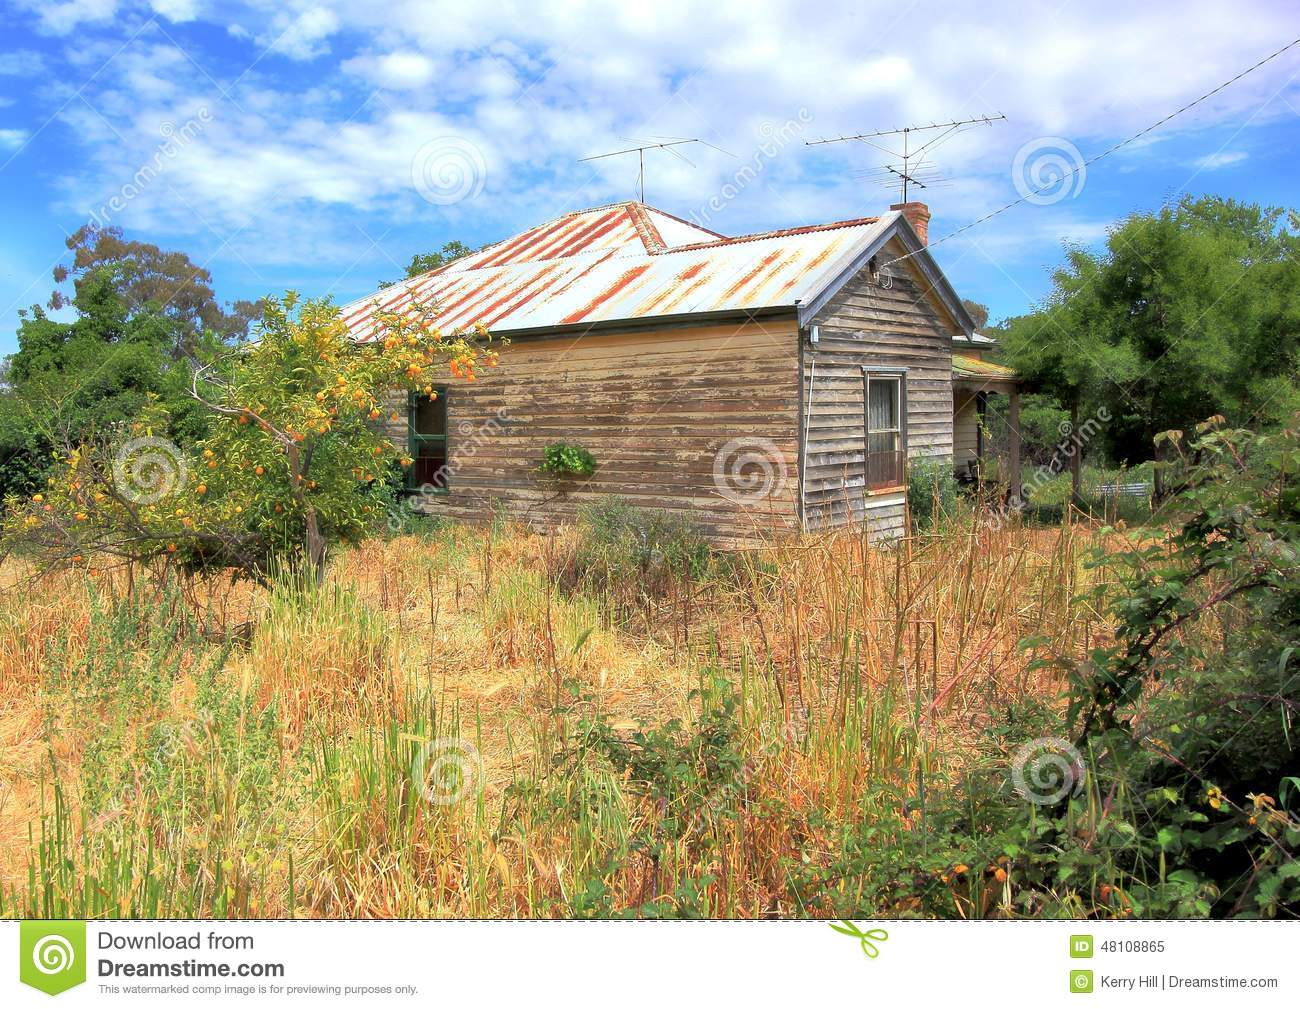 Old Rundown Country Home In Country Australia Stock Photo - Image: 48108865